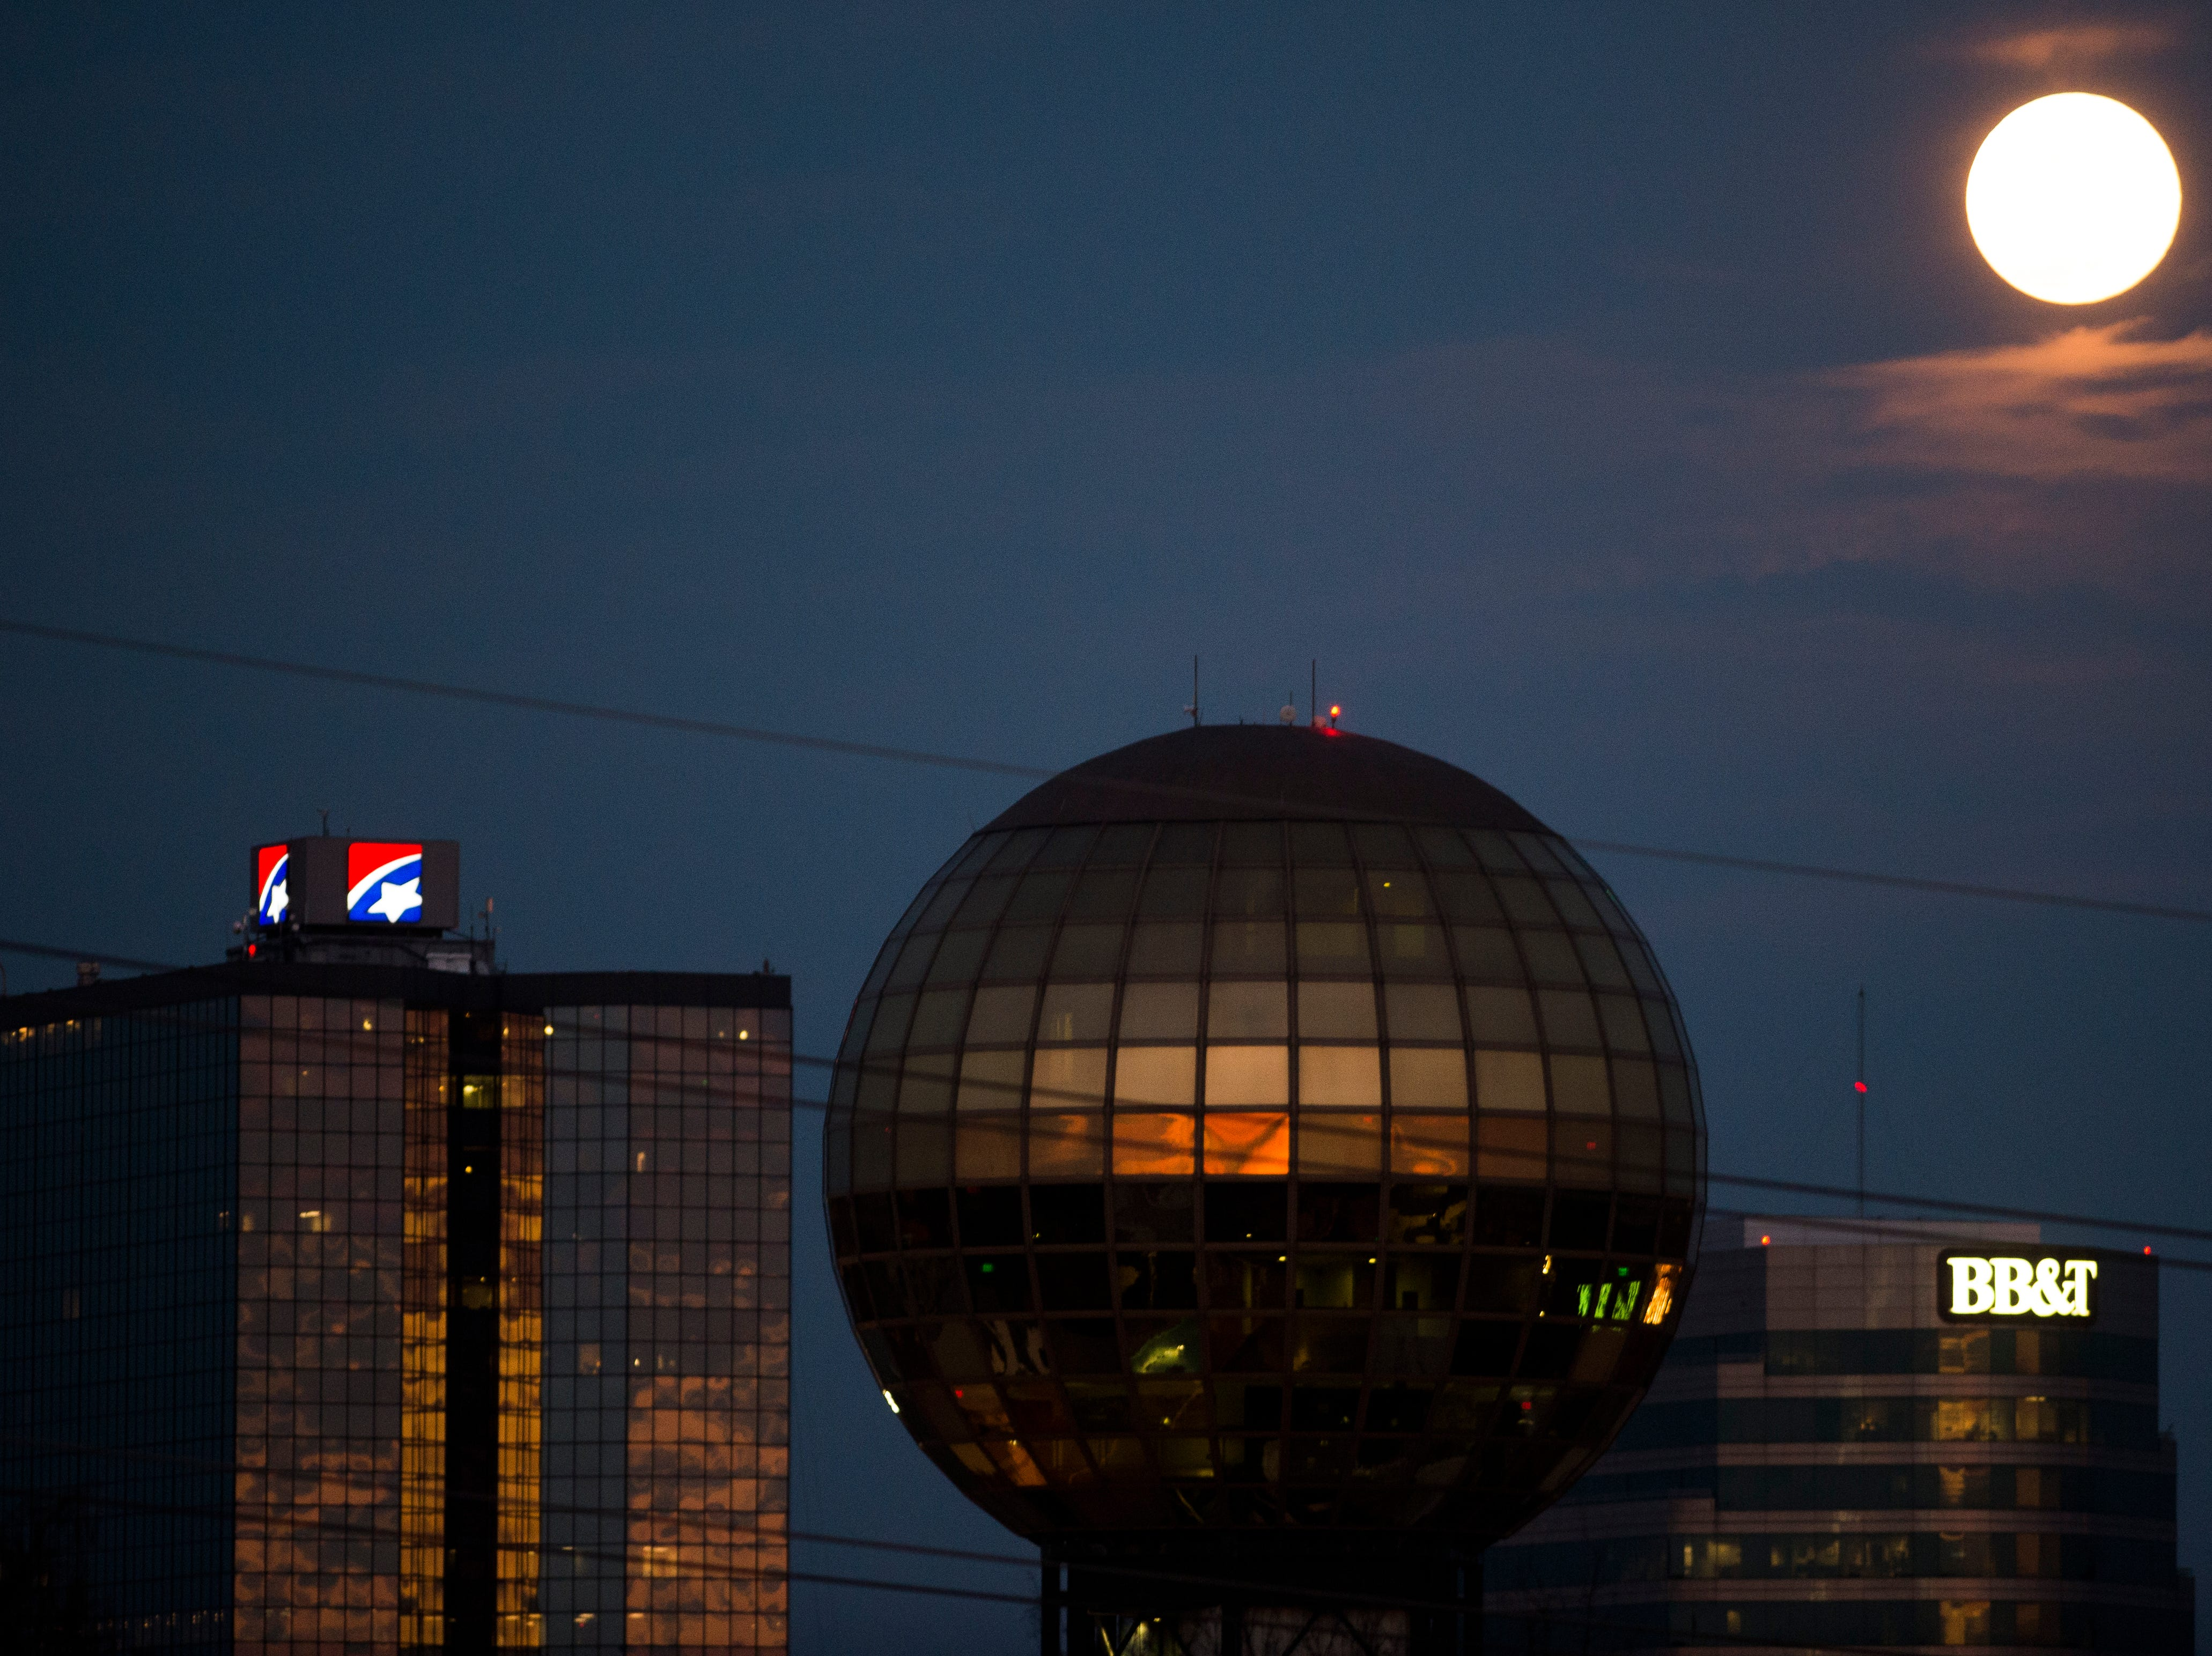 A 'super worm equinox moon' rises over downtown as seen from Fort Sanders in Knoxville, Tennessee on Wednesday, March 20, 2019. The last supermoon of 2019 gets its name since it coincides with the spring equinox and folklore where it says as the frosty ground melts, earthworms begin emerging.